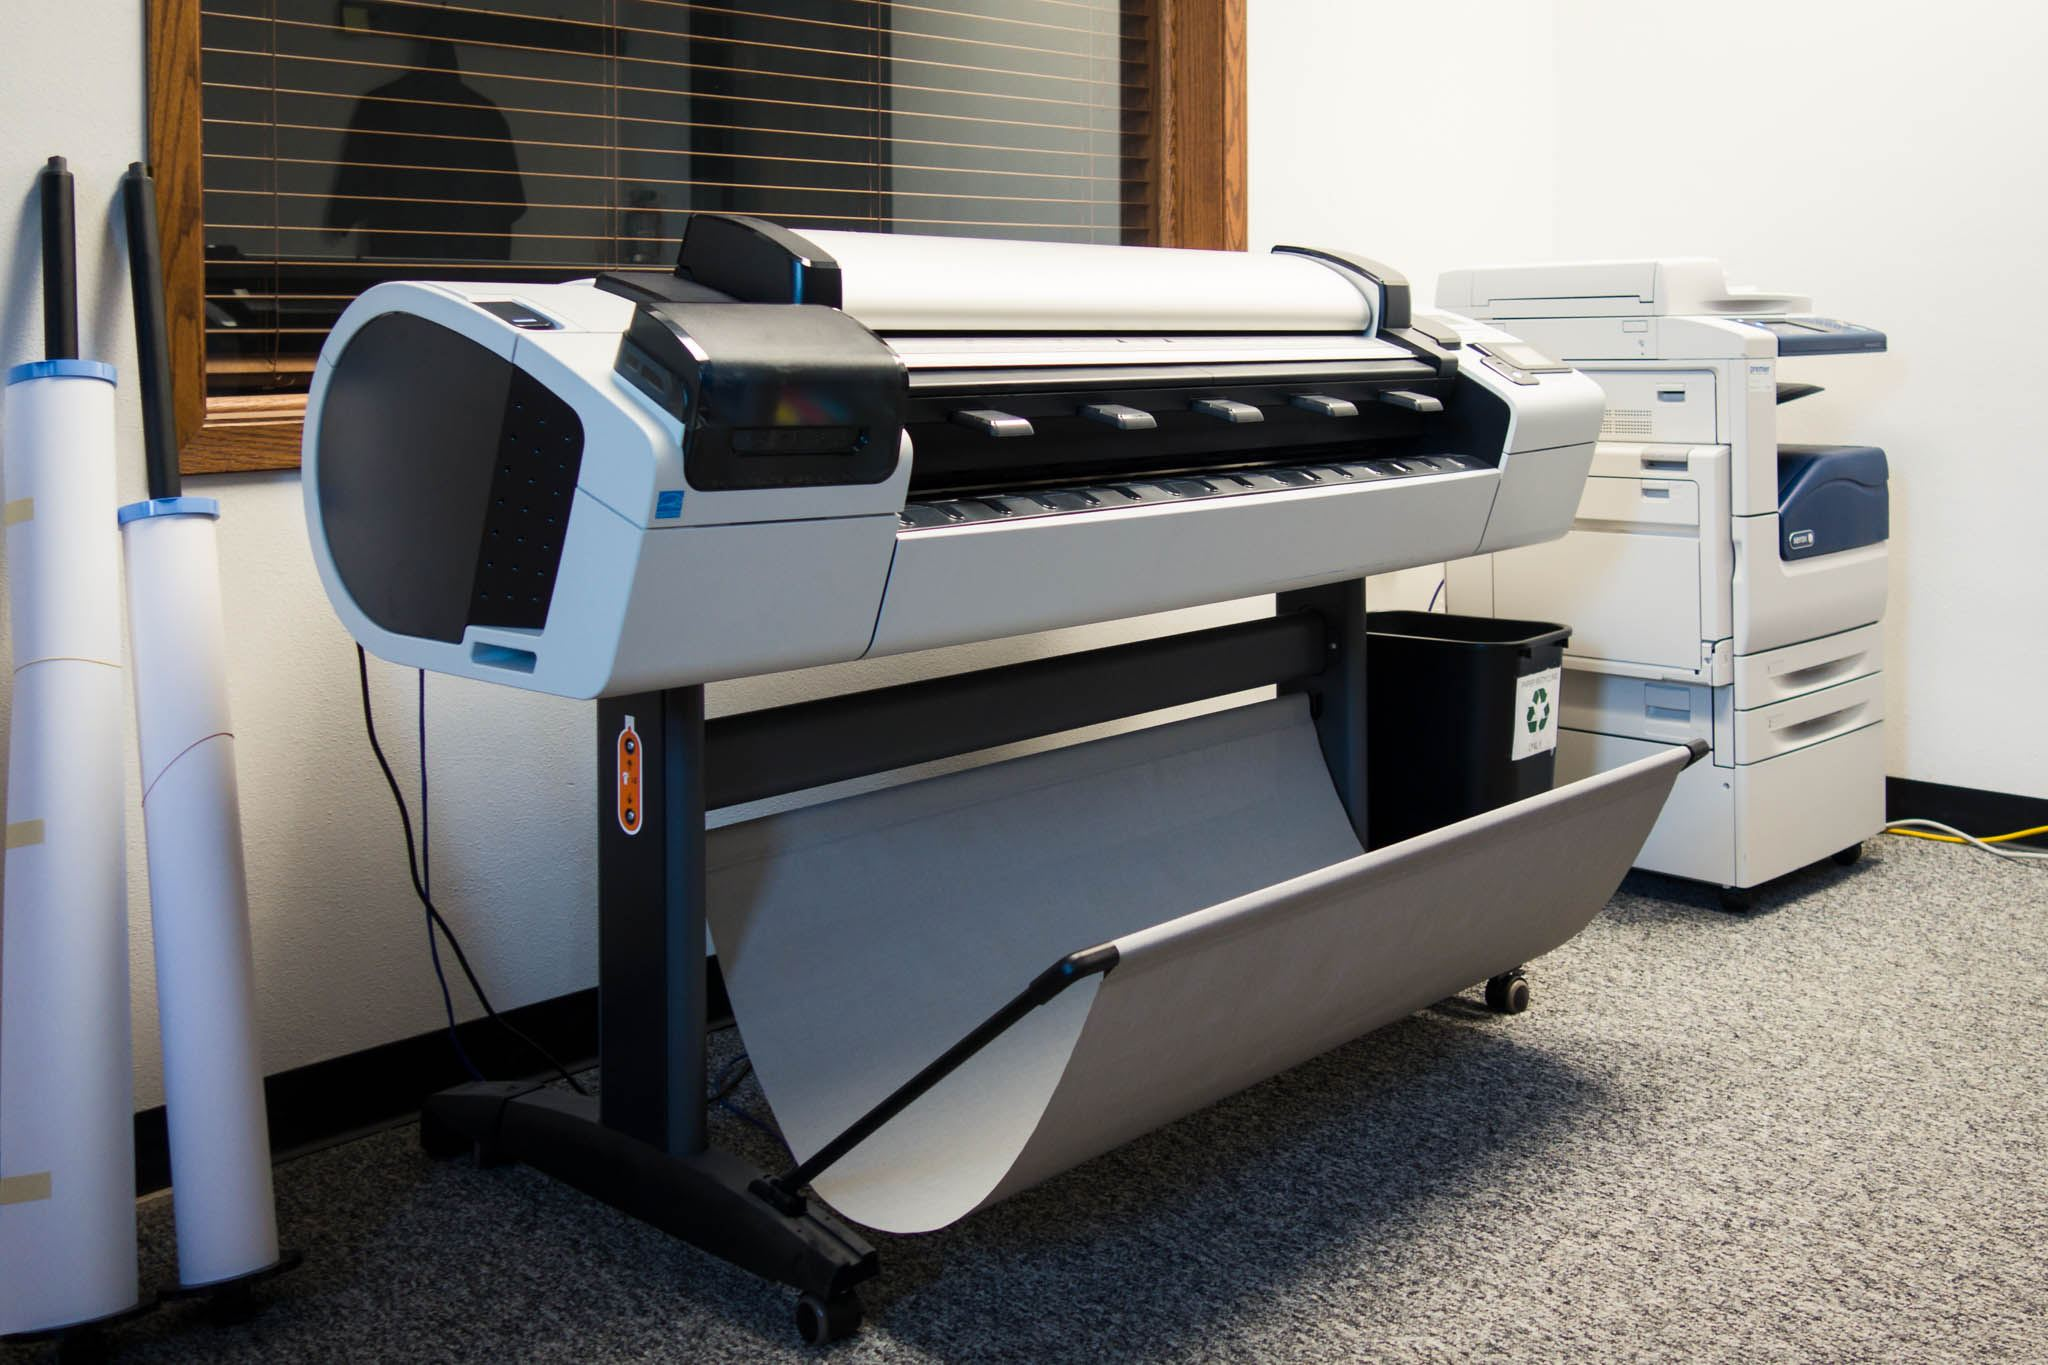 Hewlett Packard Designjet T2300ps plotter printer used for printing maps